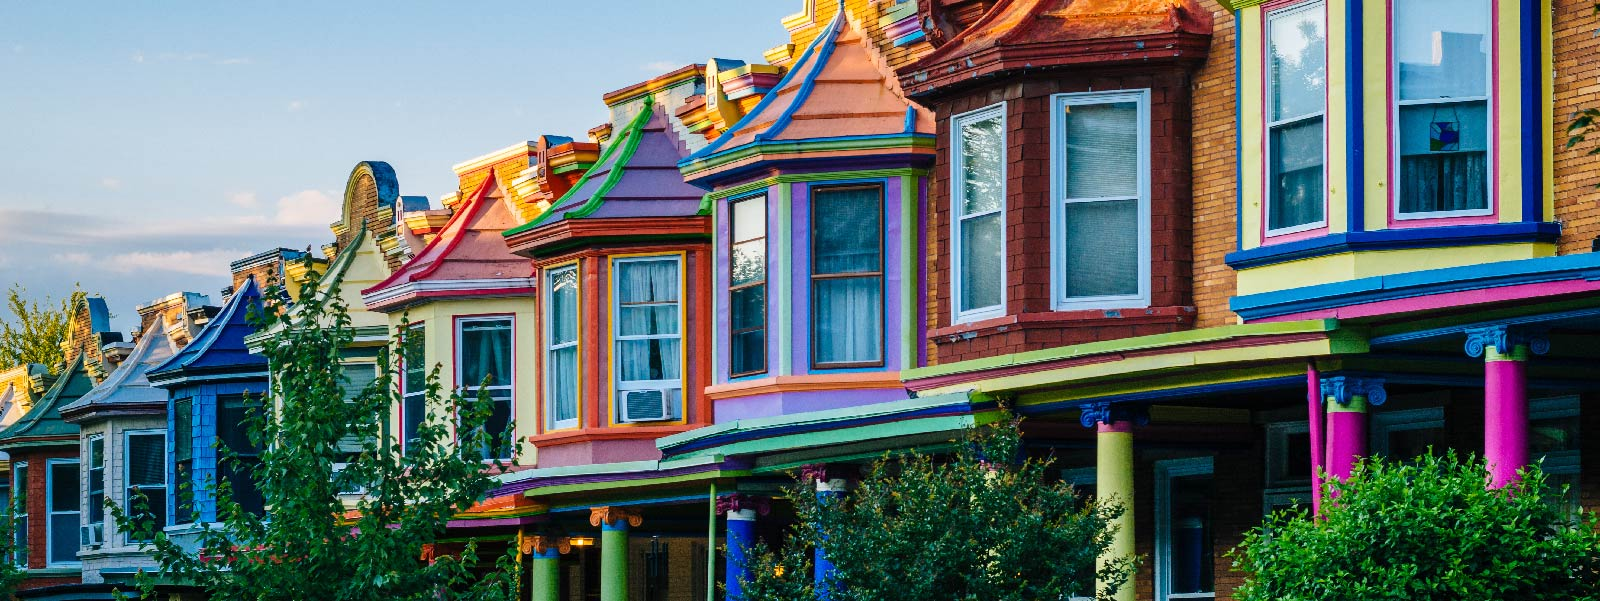 Consider Moving to These 3 Cool Neighborhoods in Baltimore